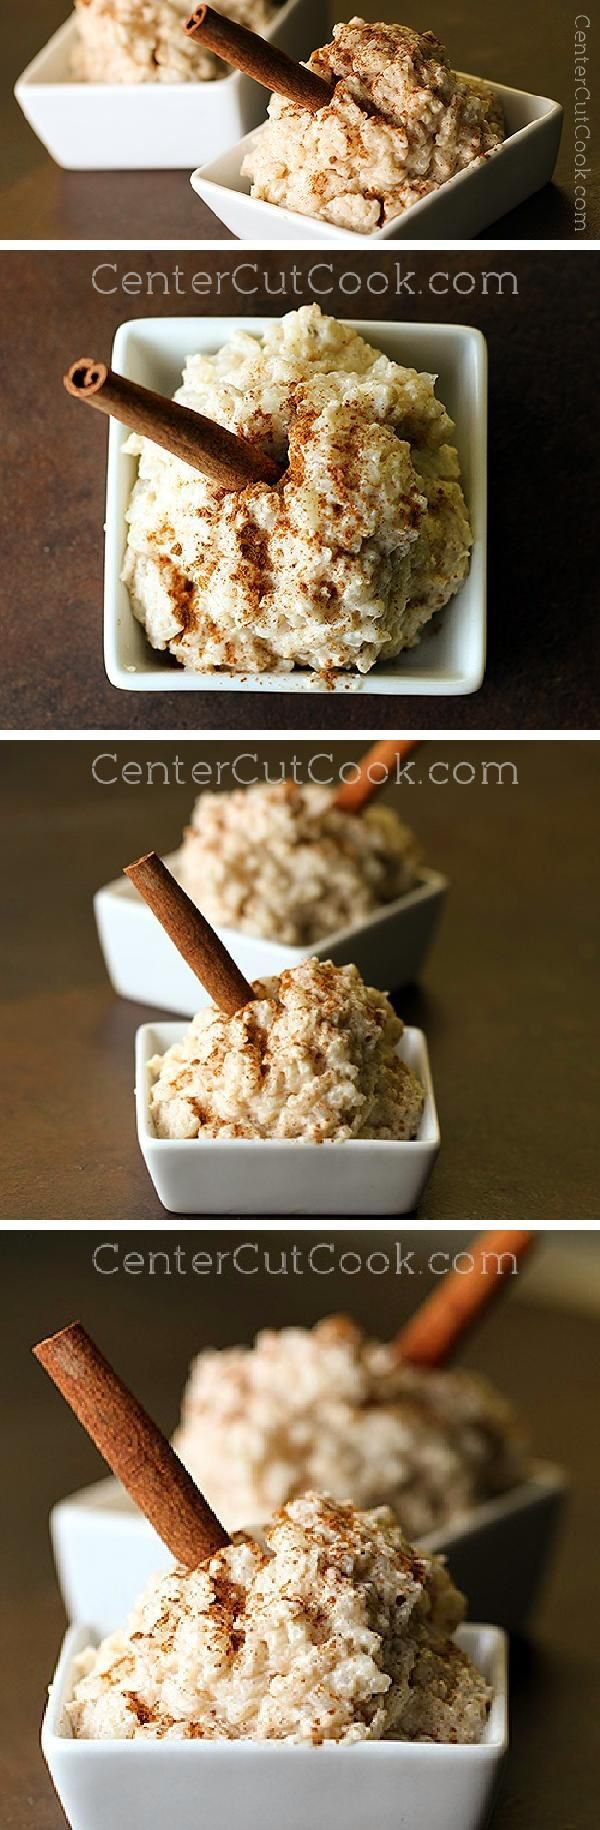 This CINNAMON RICE PUDDING calls for simple ingredients and turns out creamy, thick, rich, and delicious, just the way rice pudding should be! It's made entirely on the STOVETOP - no baking here!